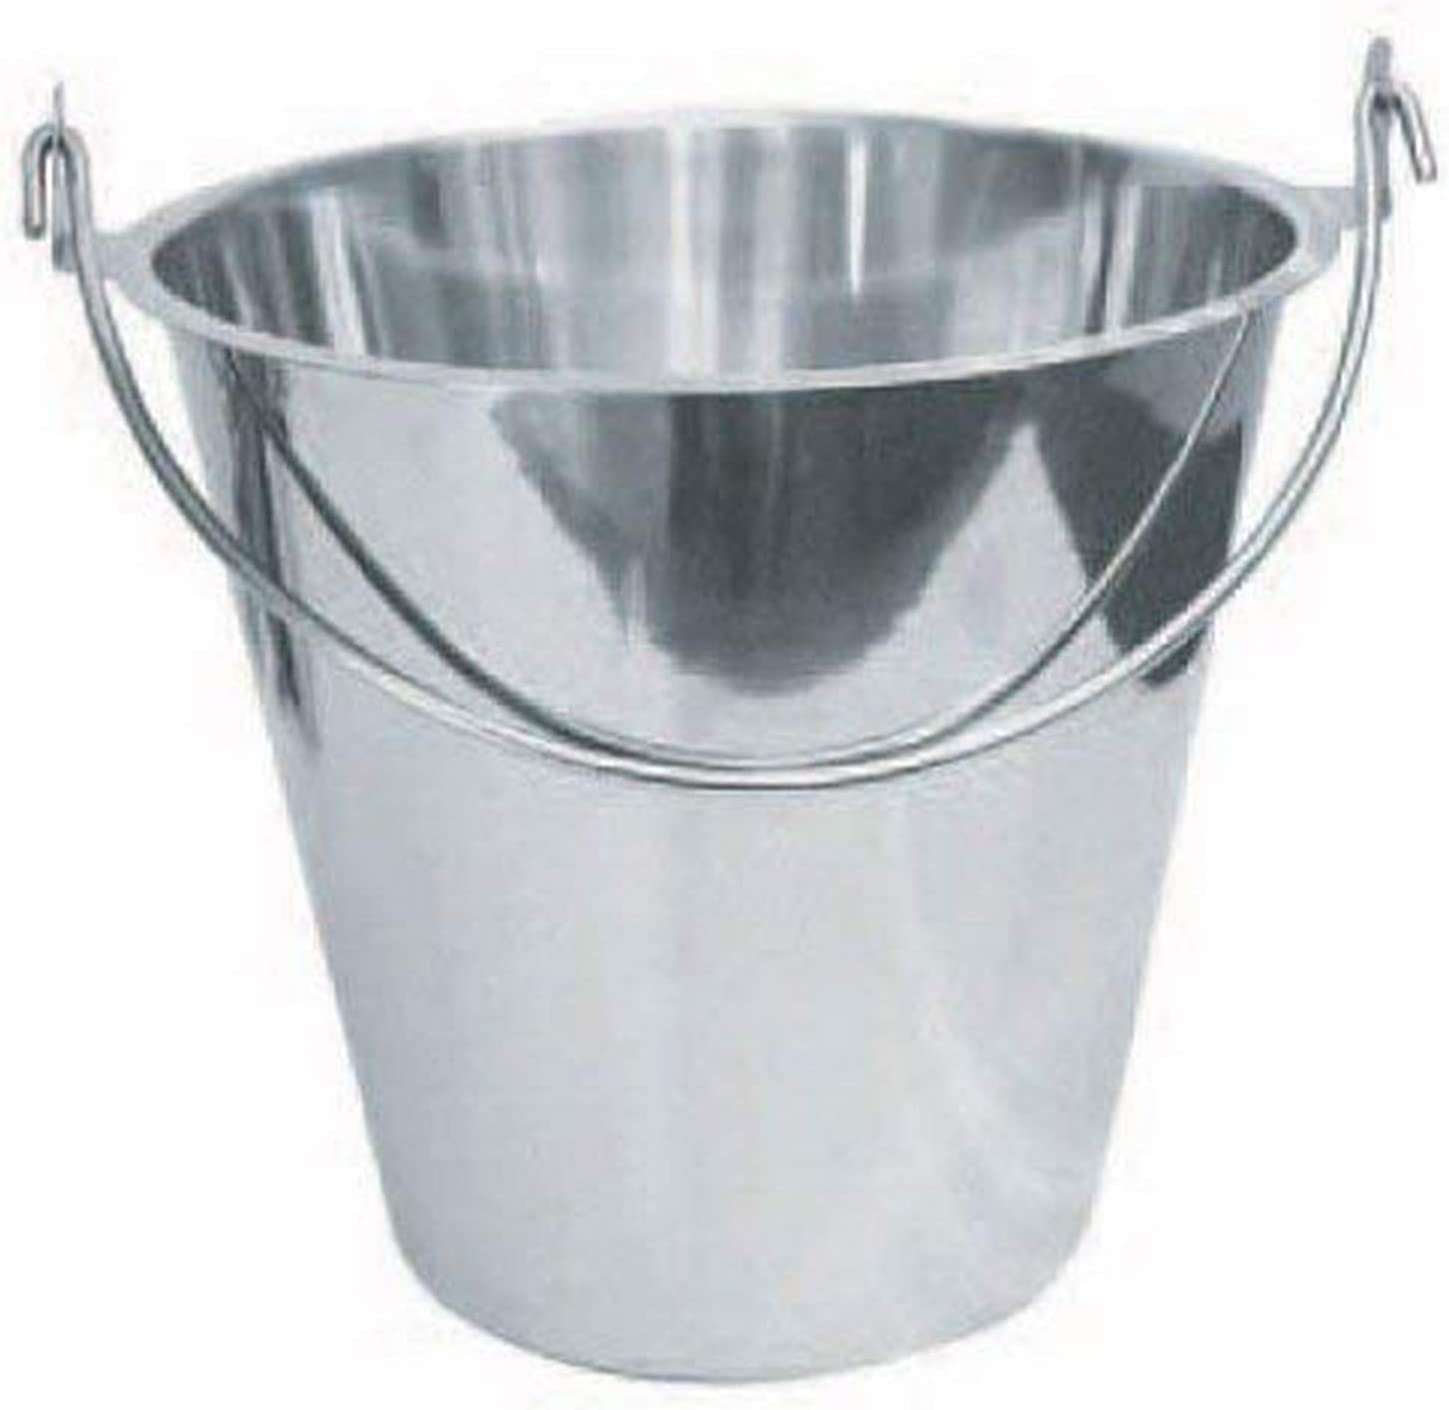 Winco UP-13 Stainless Steel Utility Pail 13-Quart